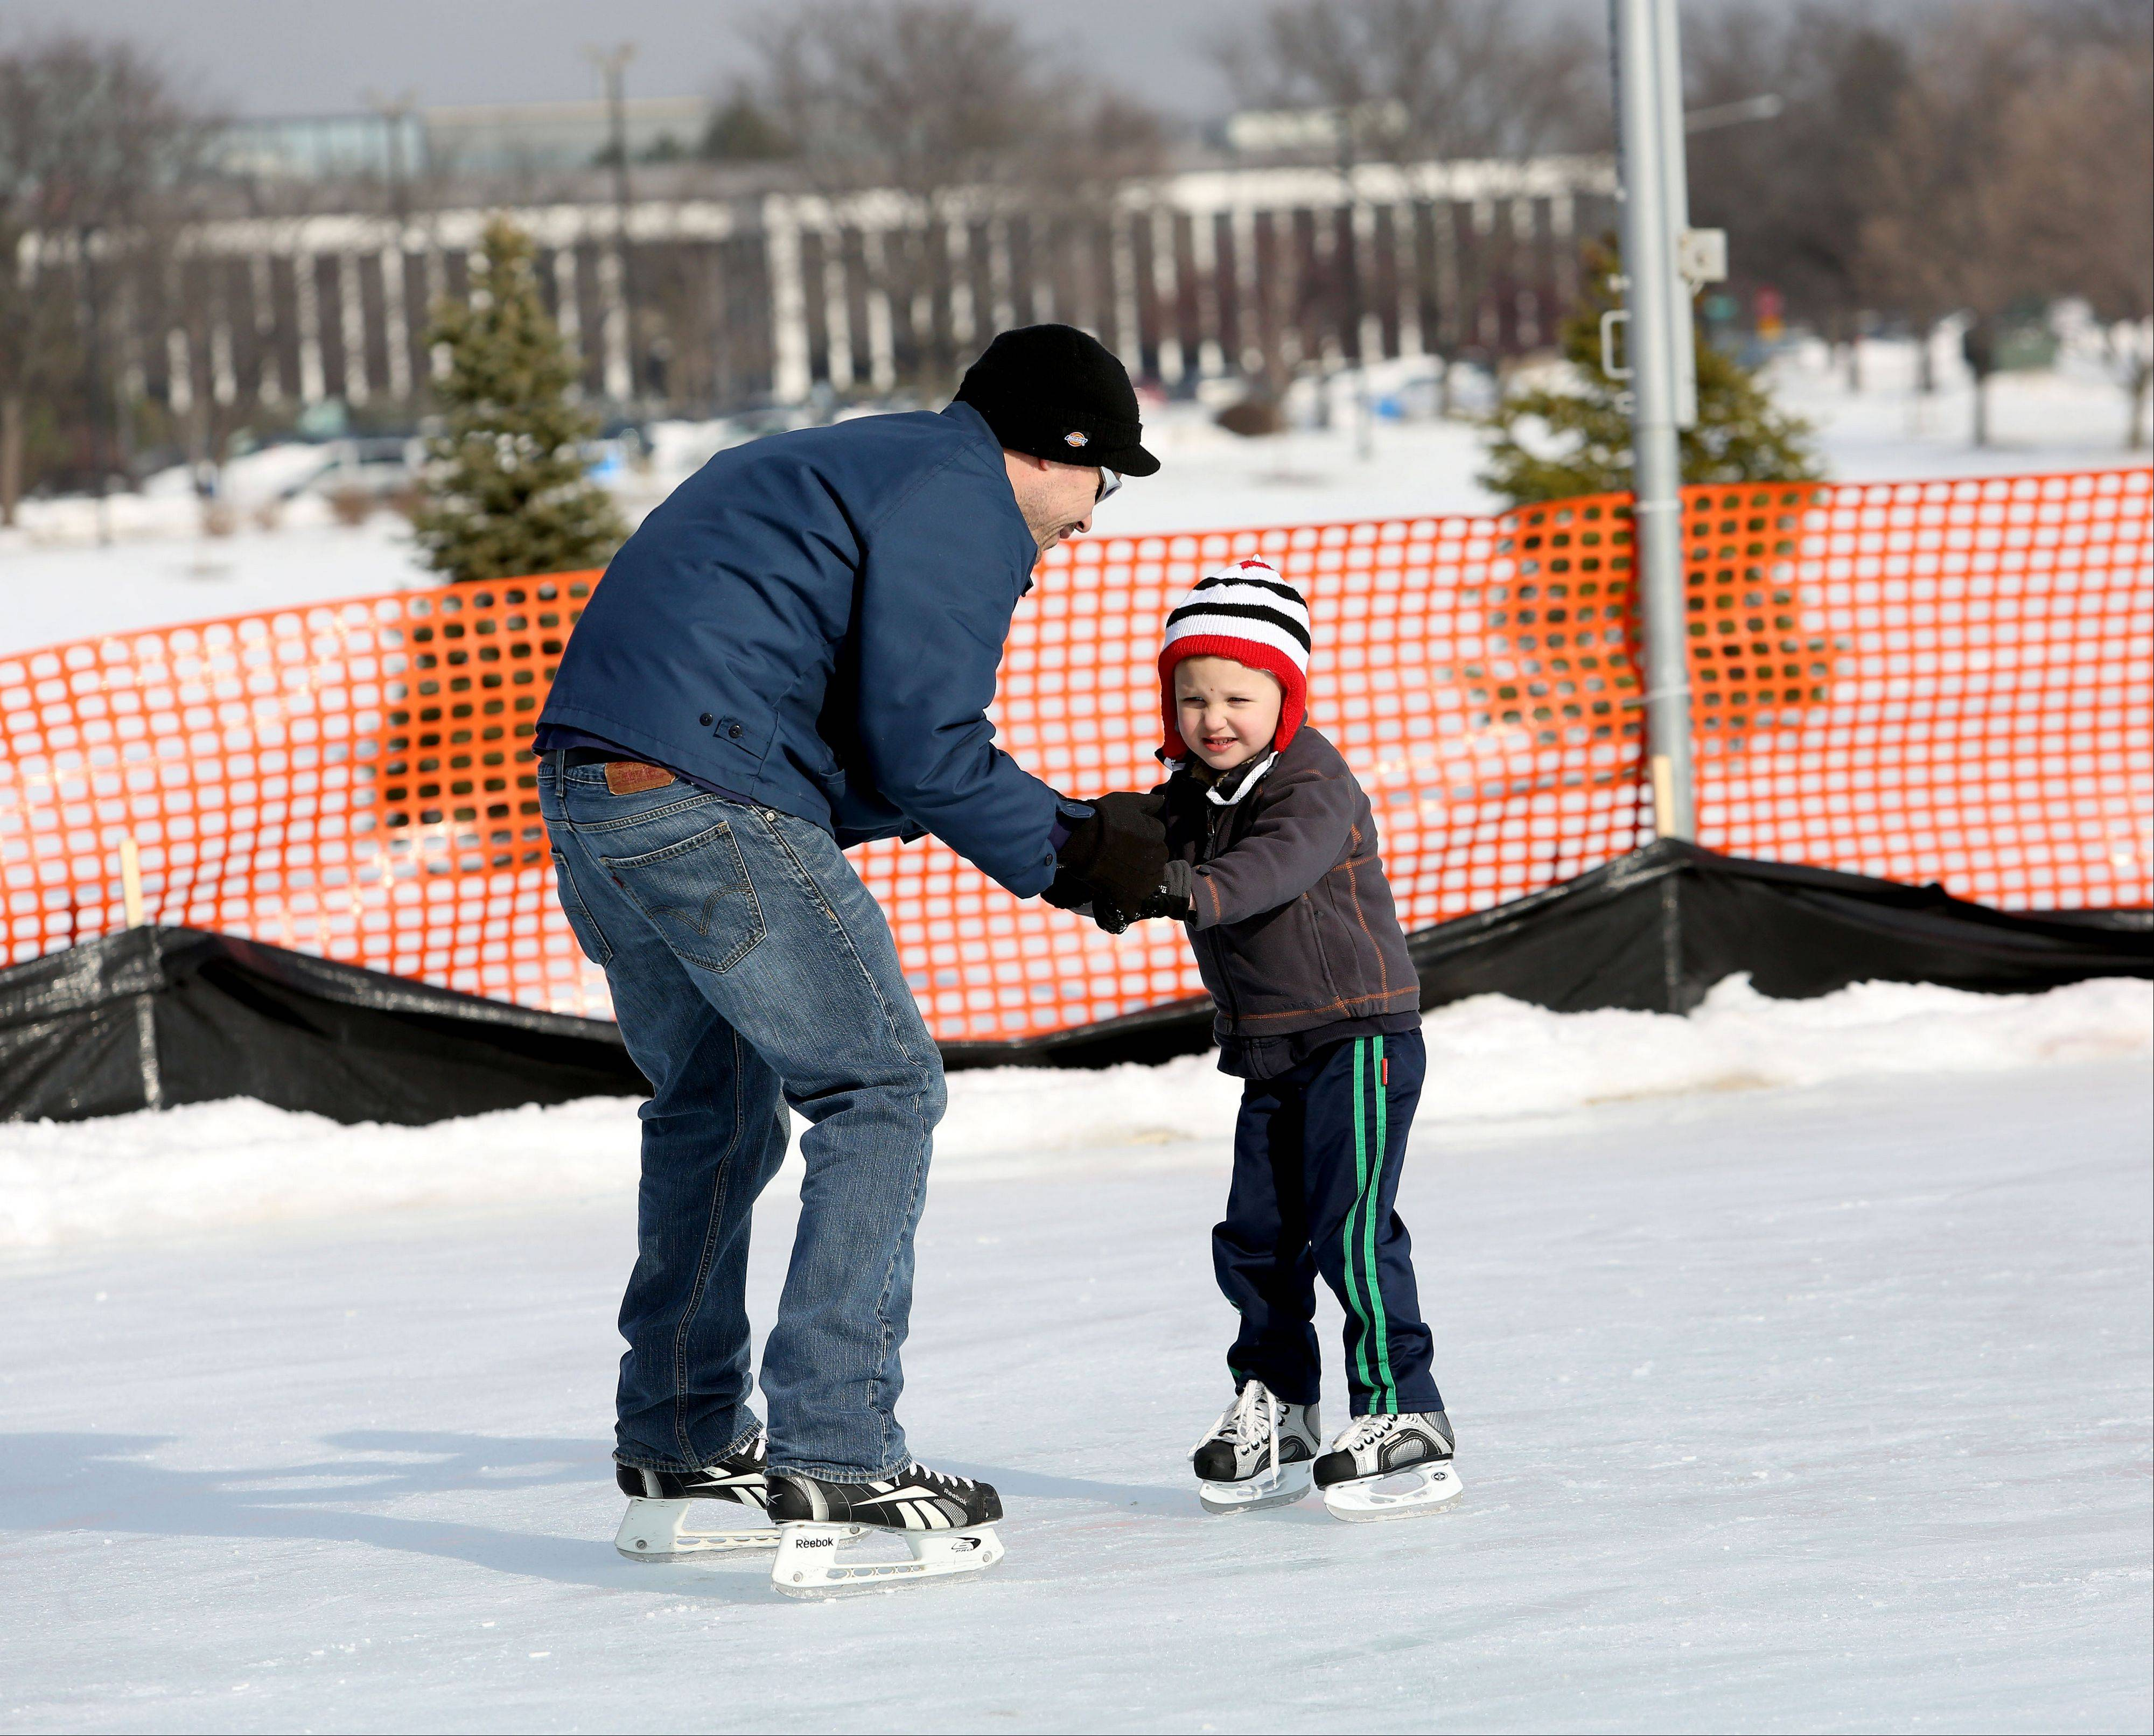 Eric Williamson helps his son Oslo, 4, around the ice rink in Nike Park in Naperville on Friday.